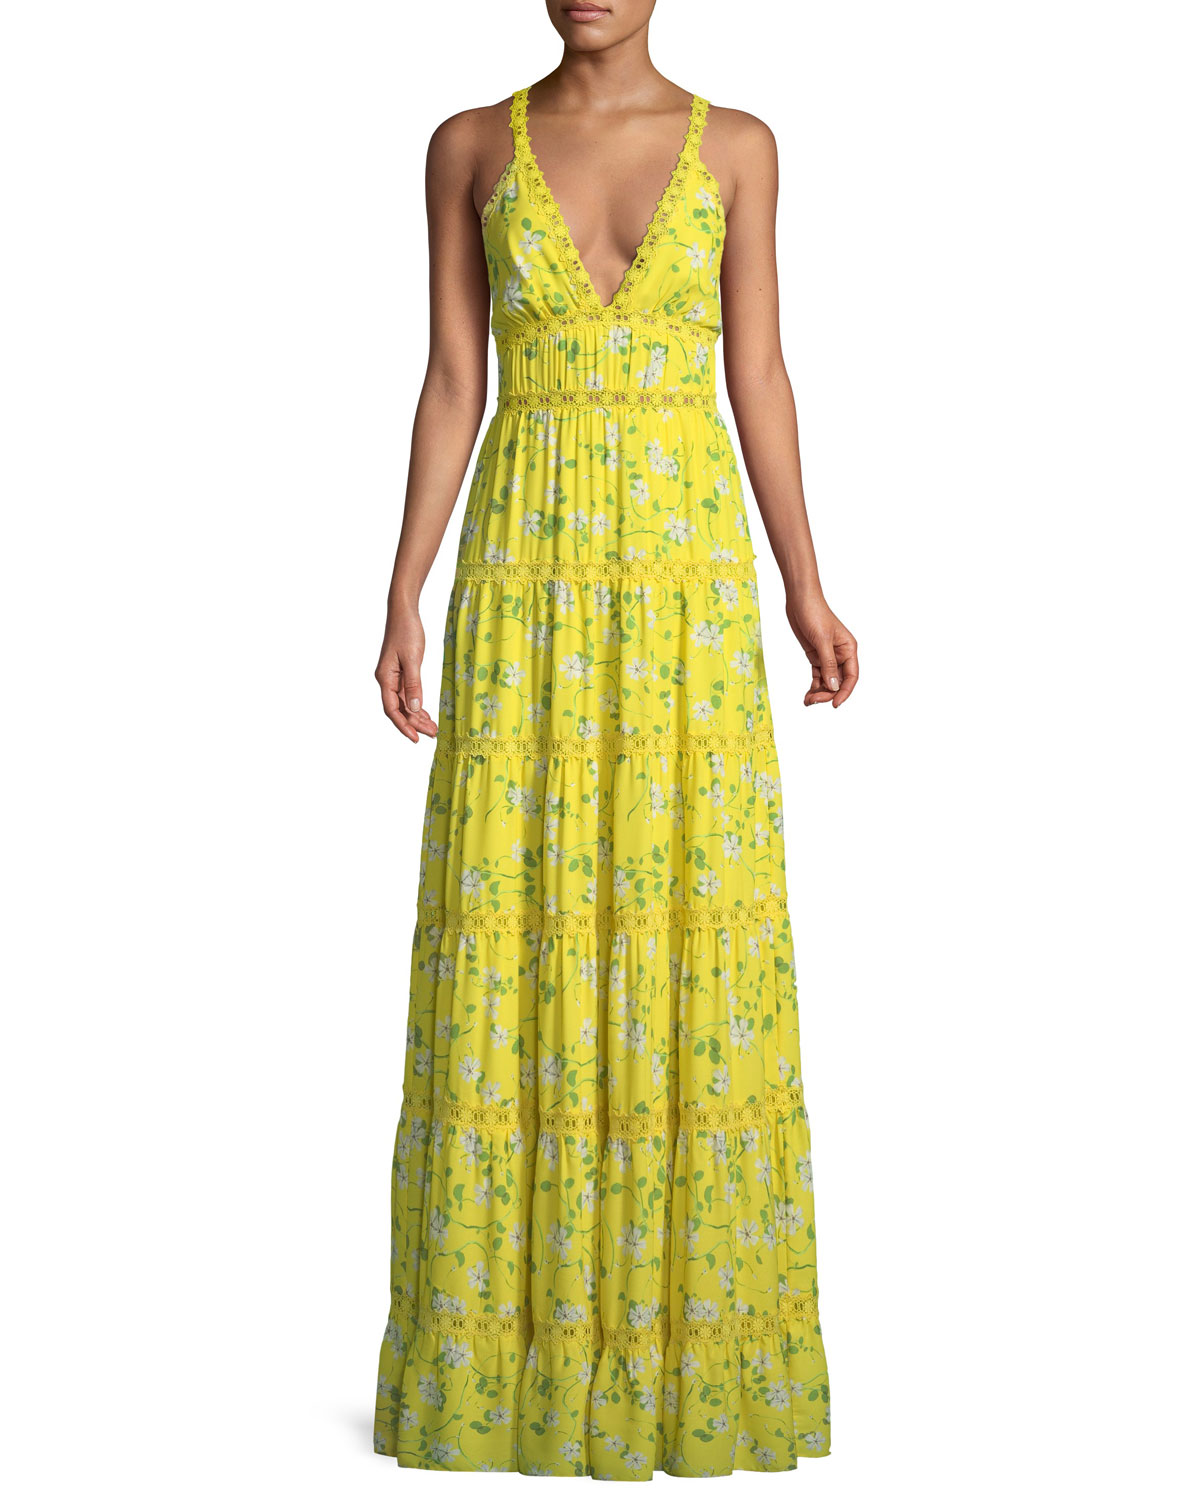 Karolina Crochet-trimmed Floral-print Chiffon Maxi Dress - Bright yellow Alice & Olivia